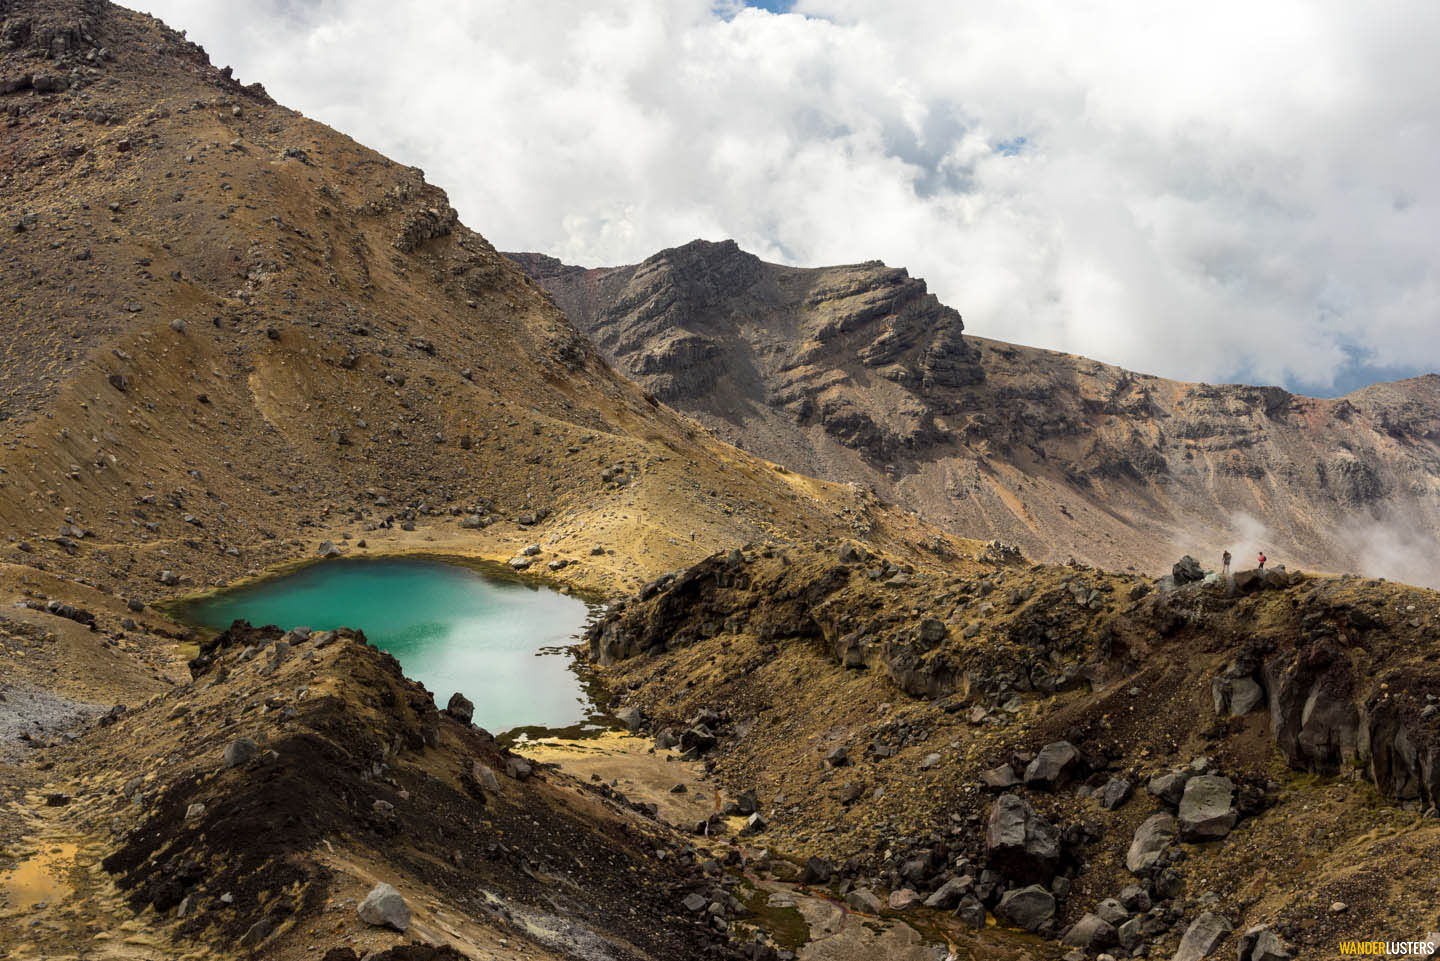 emerald-lake-preparing-to-hike-the-tongariro-alpine-crossing